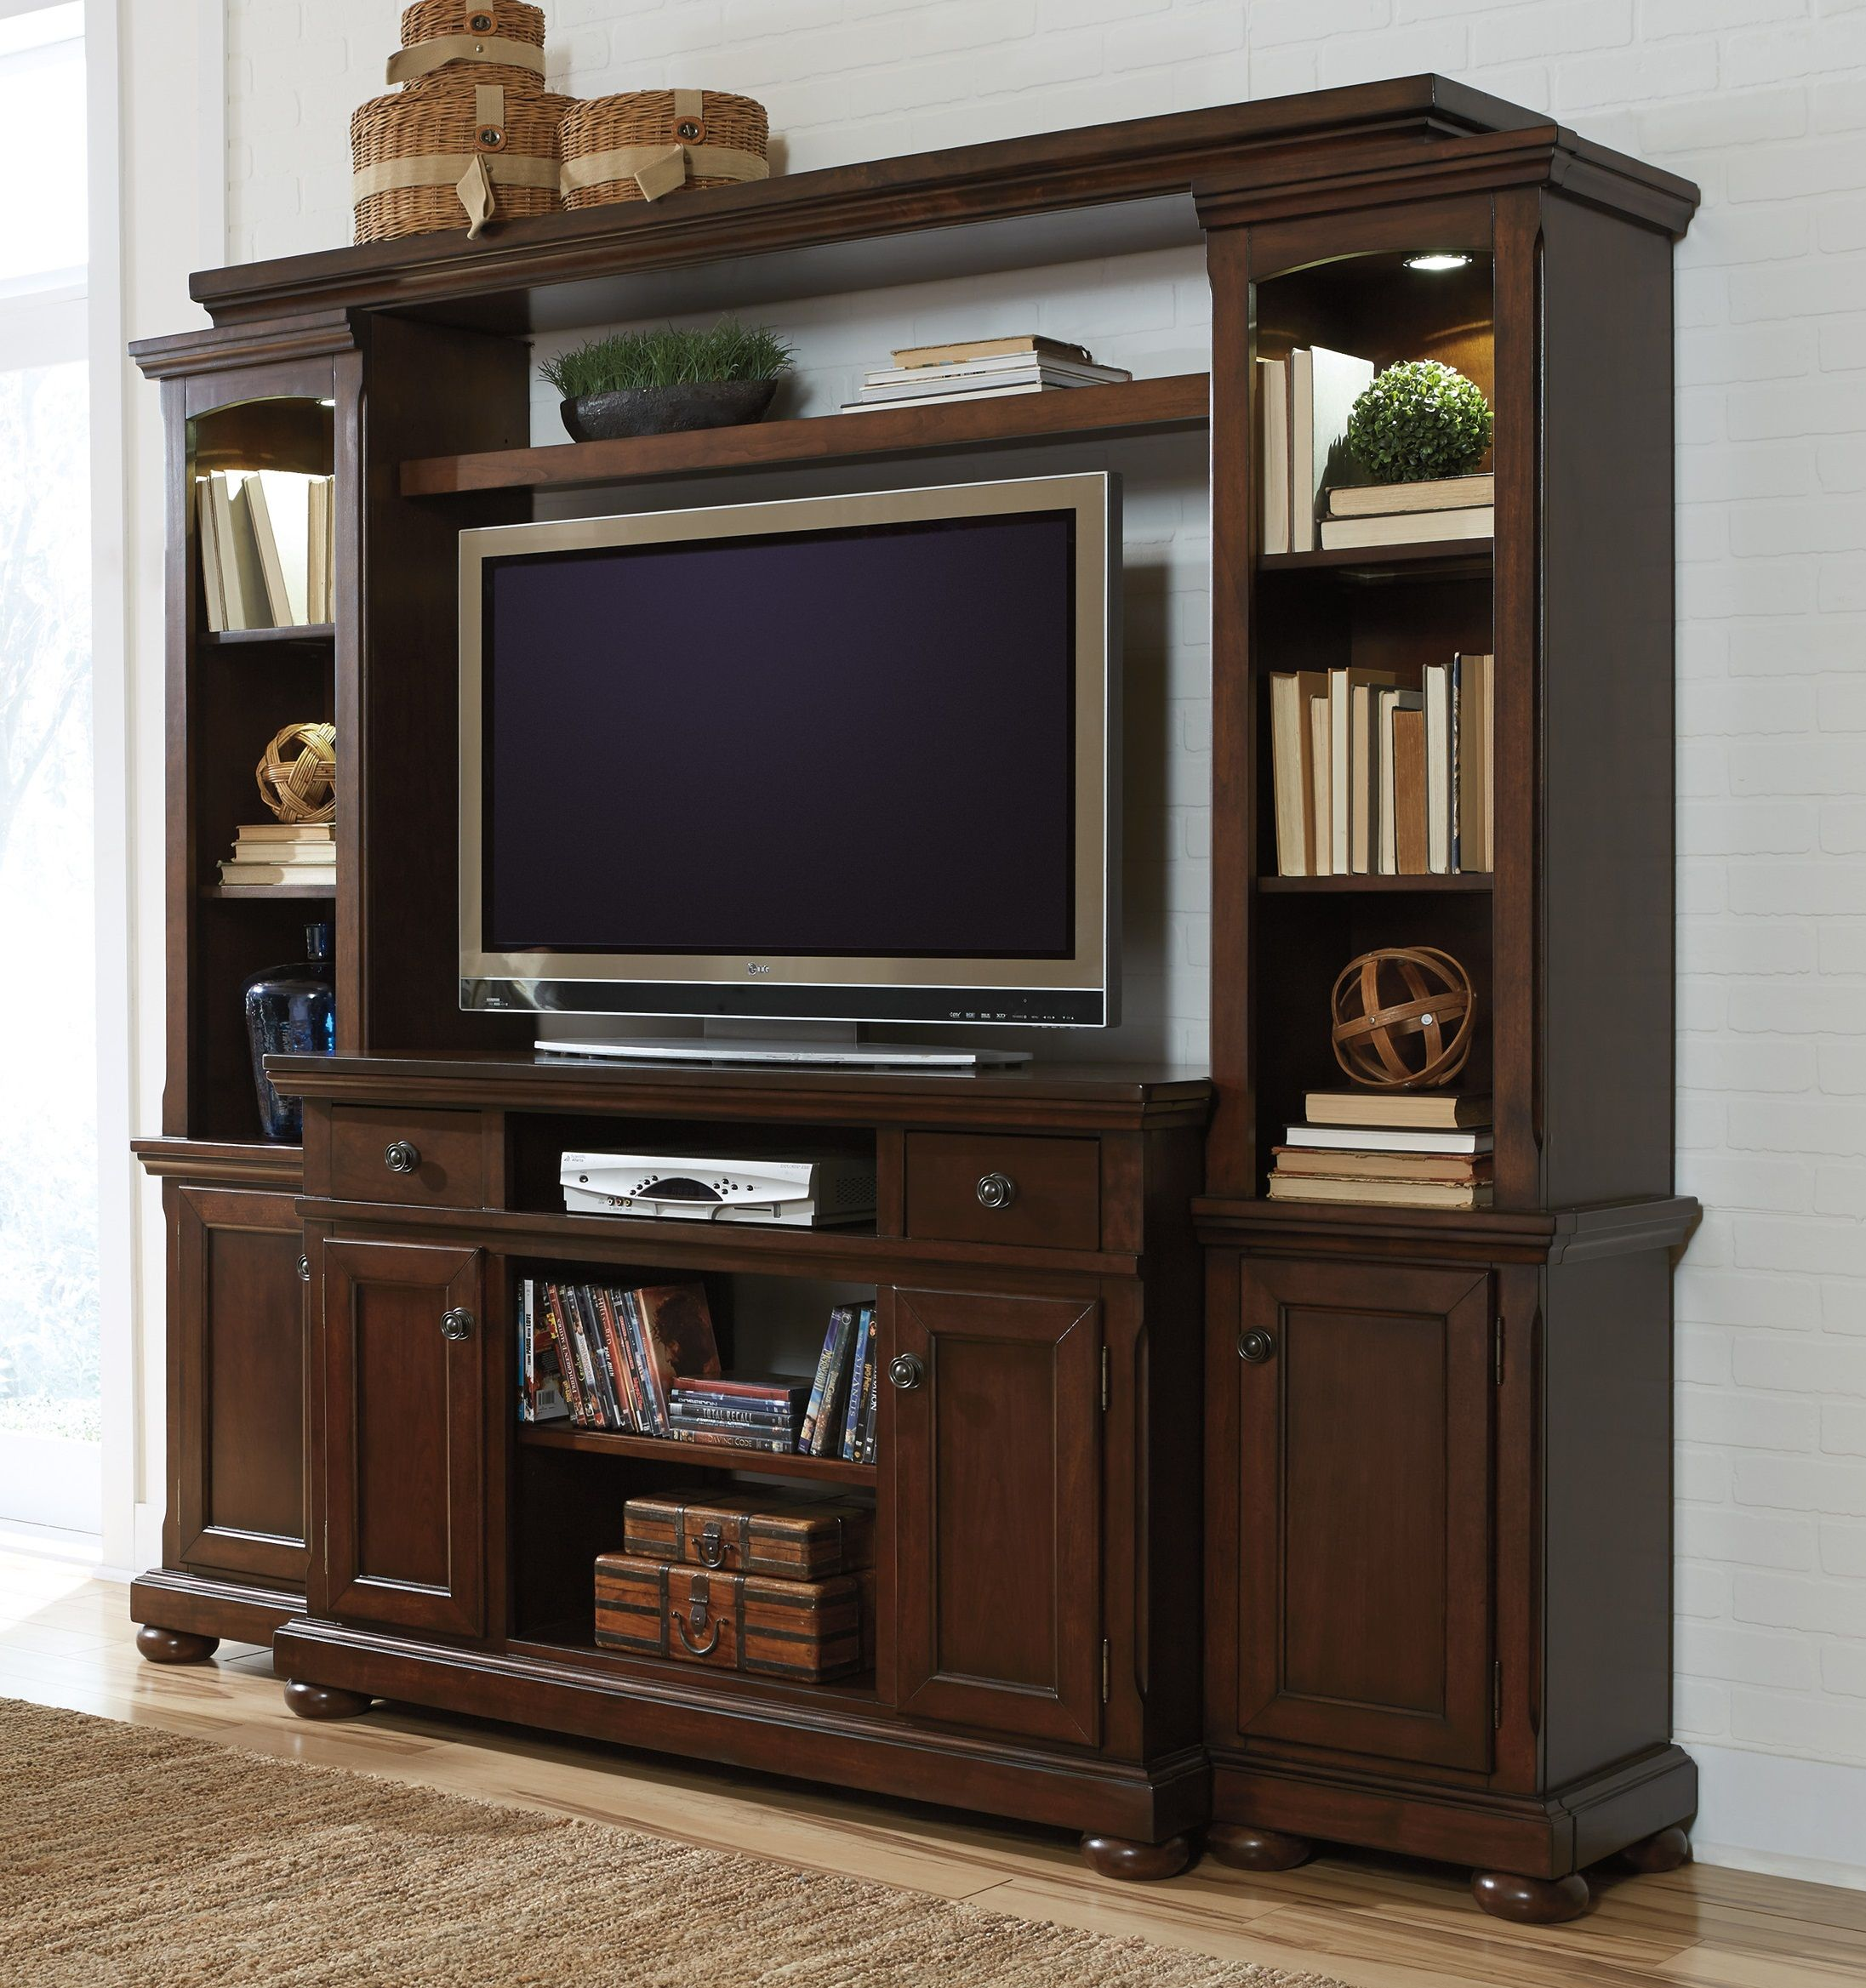 piers white jessica mcclintock entertainment with home center furniture veil console collection hutch pin and boutique cupboard